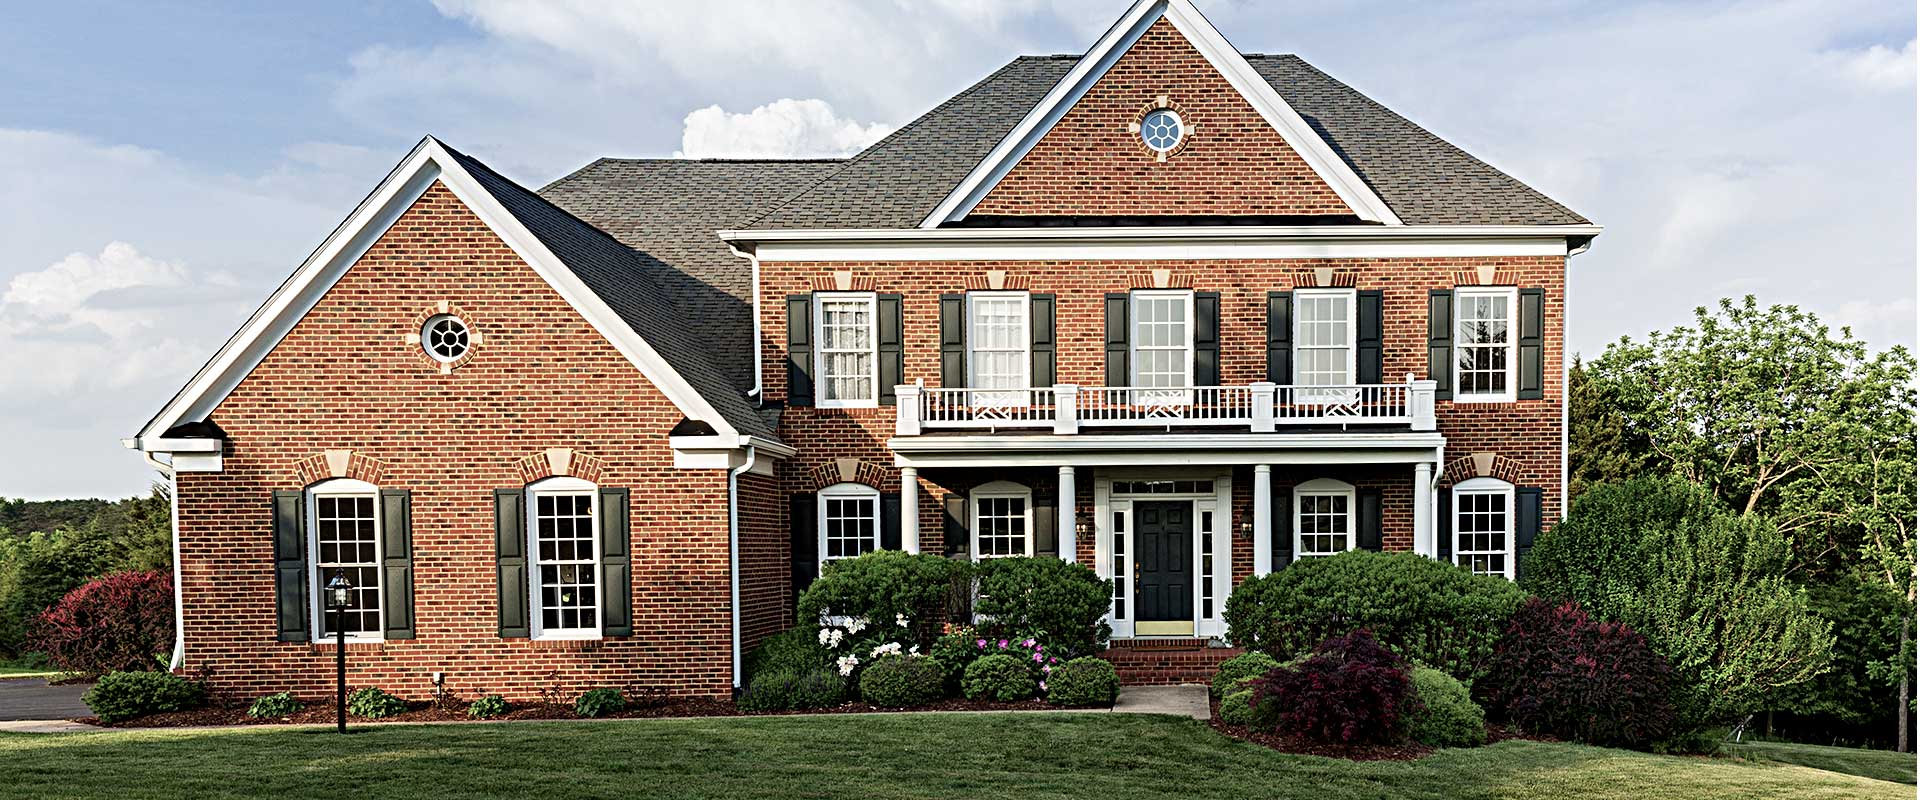 modern american colonial styled brick home